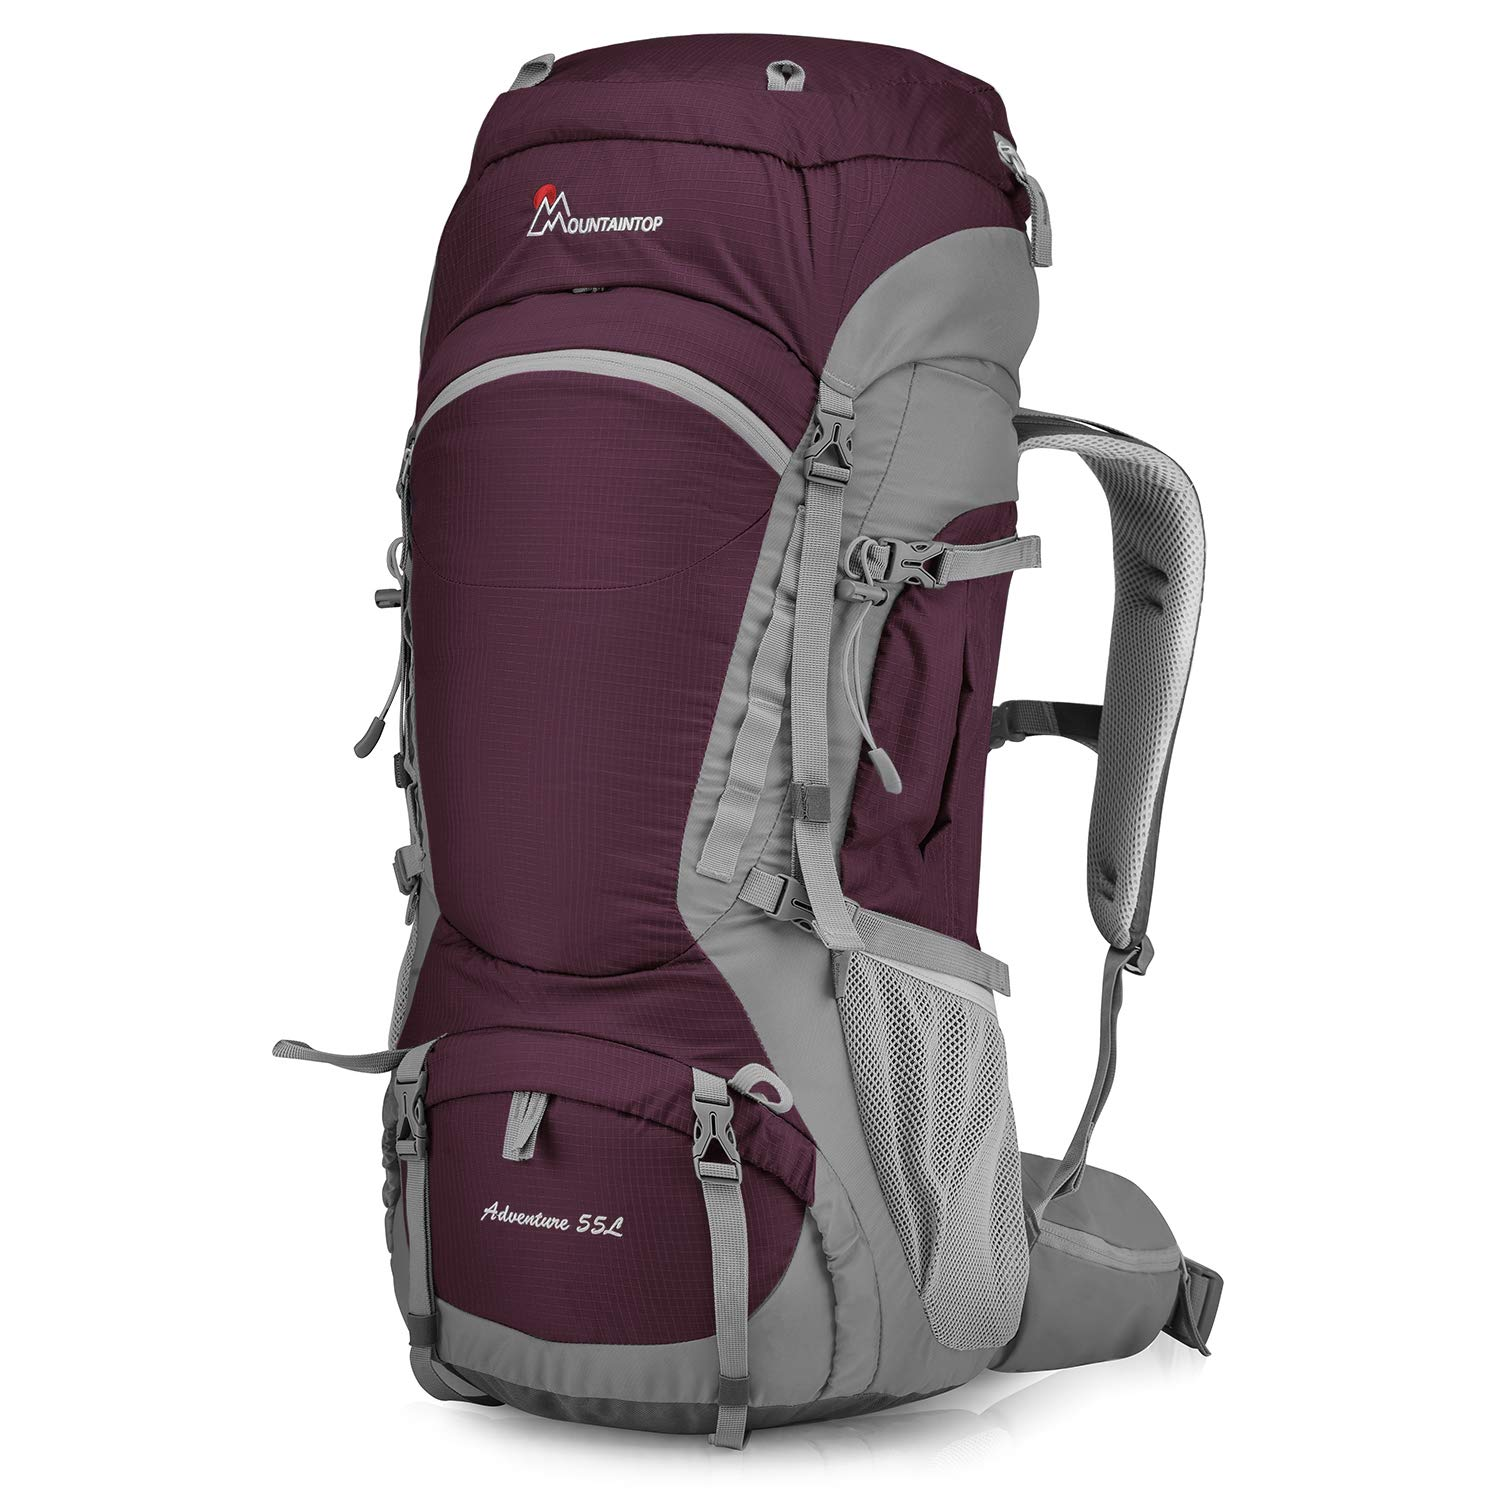 MOUNTAINTOP Hiking Internal Frame Backpack